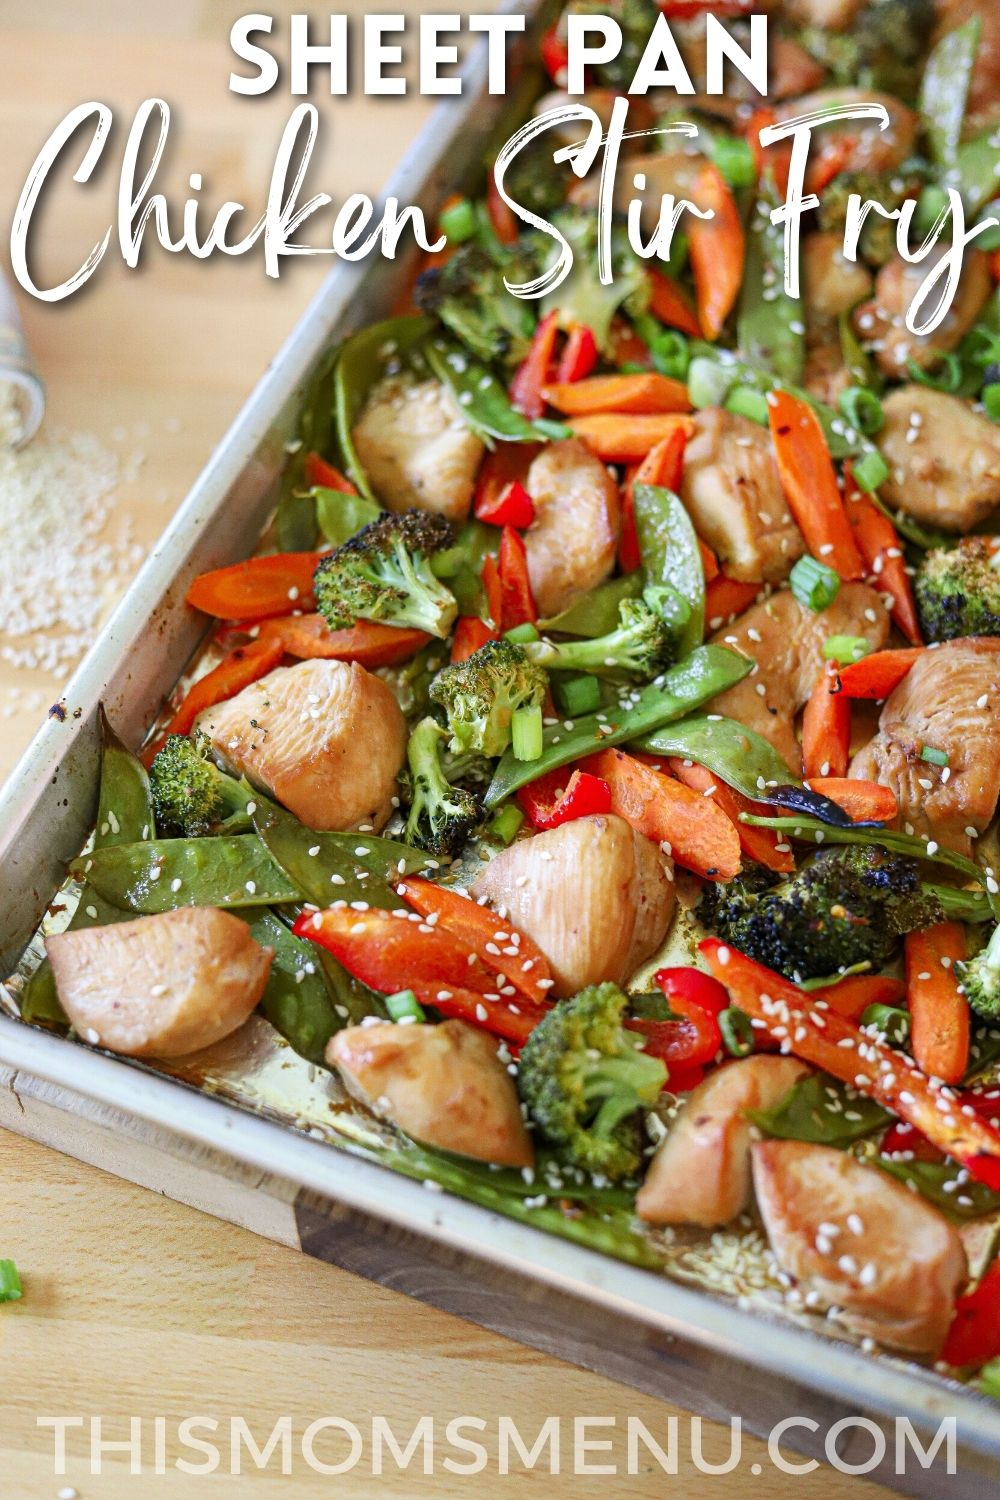 Chicken and vegetables cooked together on a sheet pan with a white text overlay.